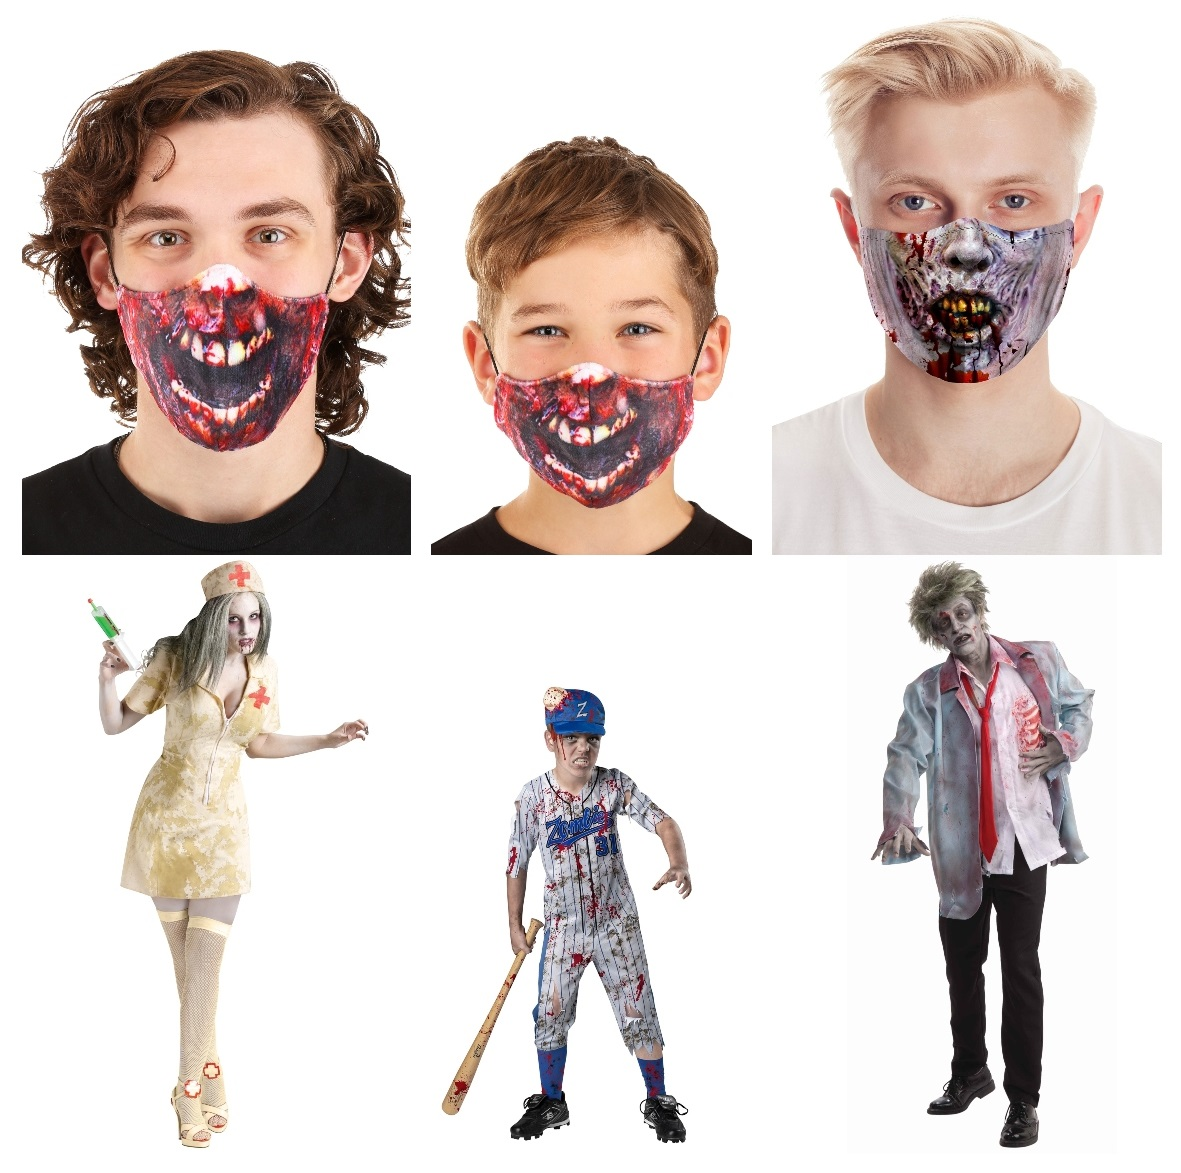 Zombie Masks and Costumes